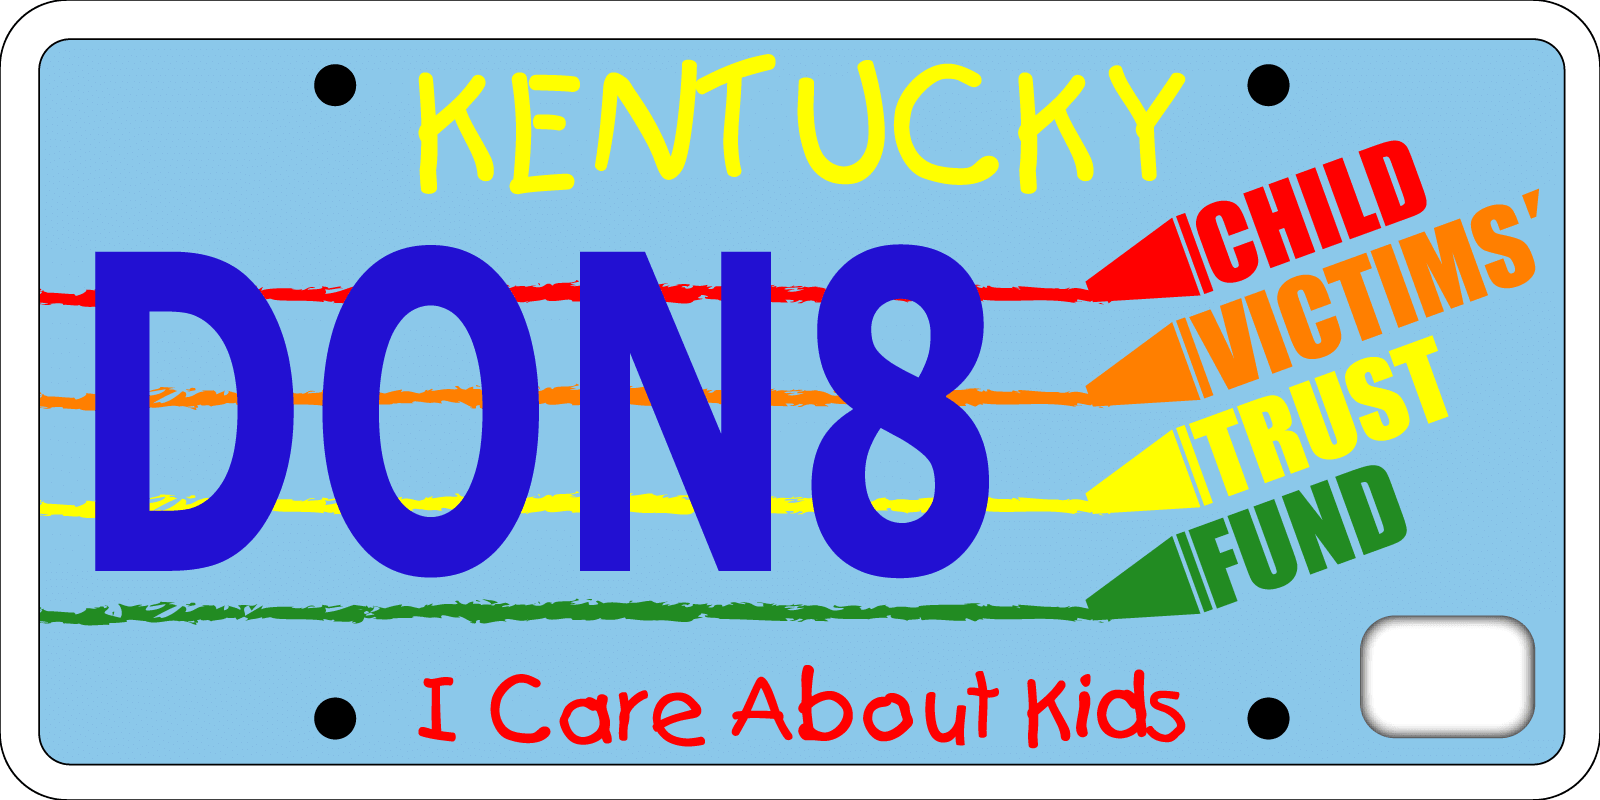 icareaboutkids-license-plate.png